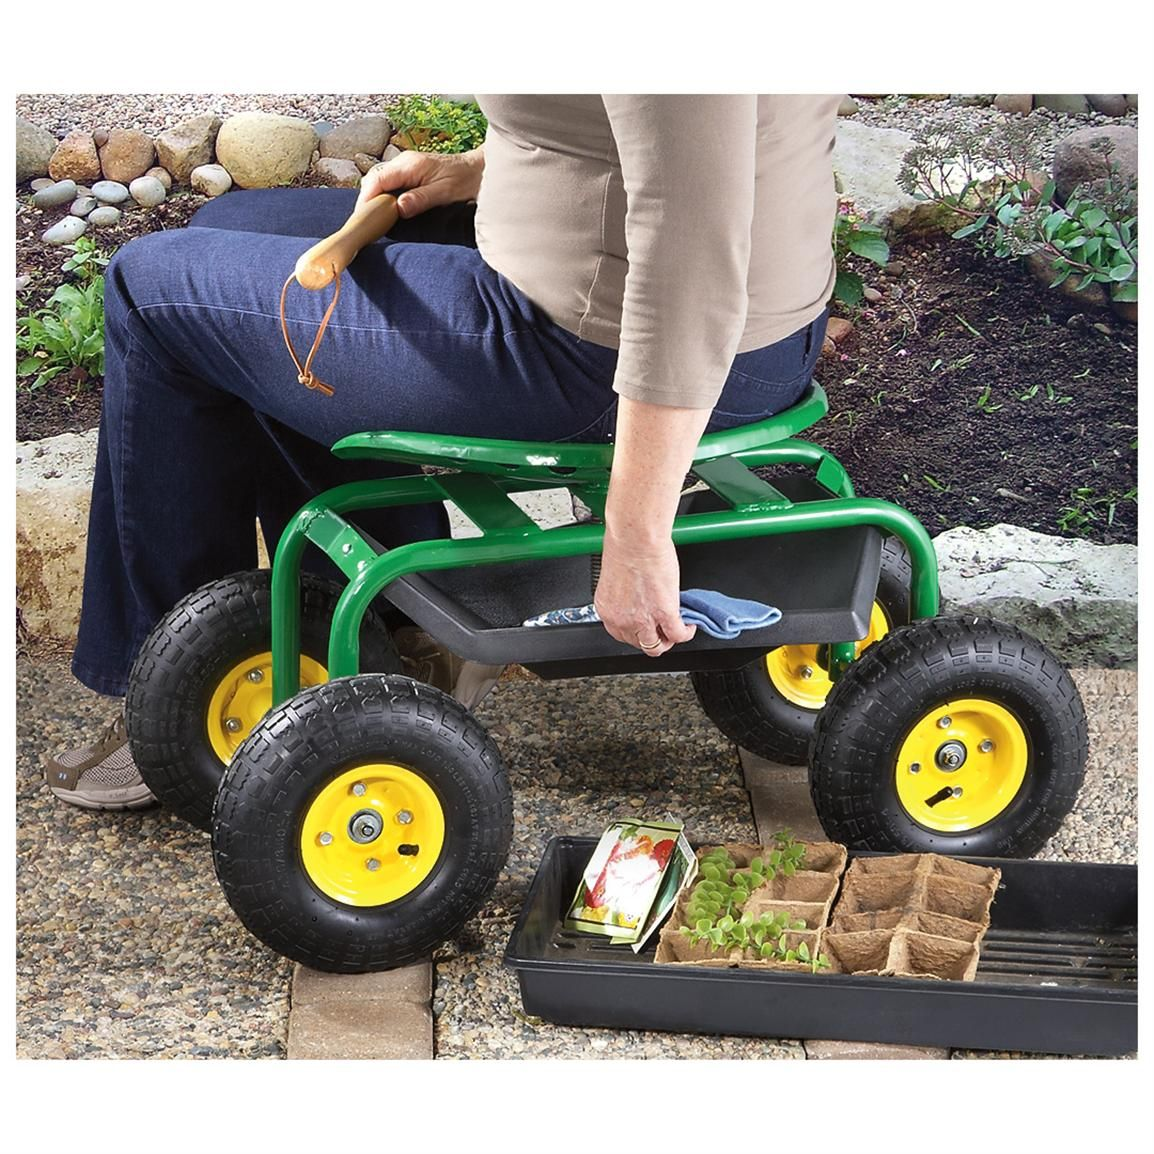 CASTLECREEK Rolling Garden Seat with Builtin Tray Gardens